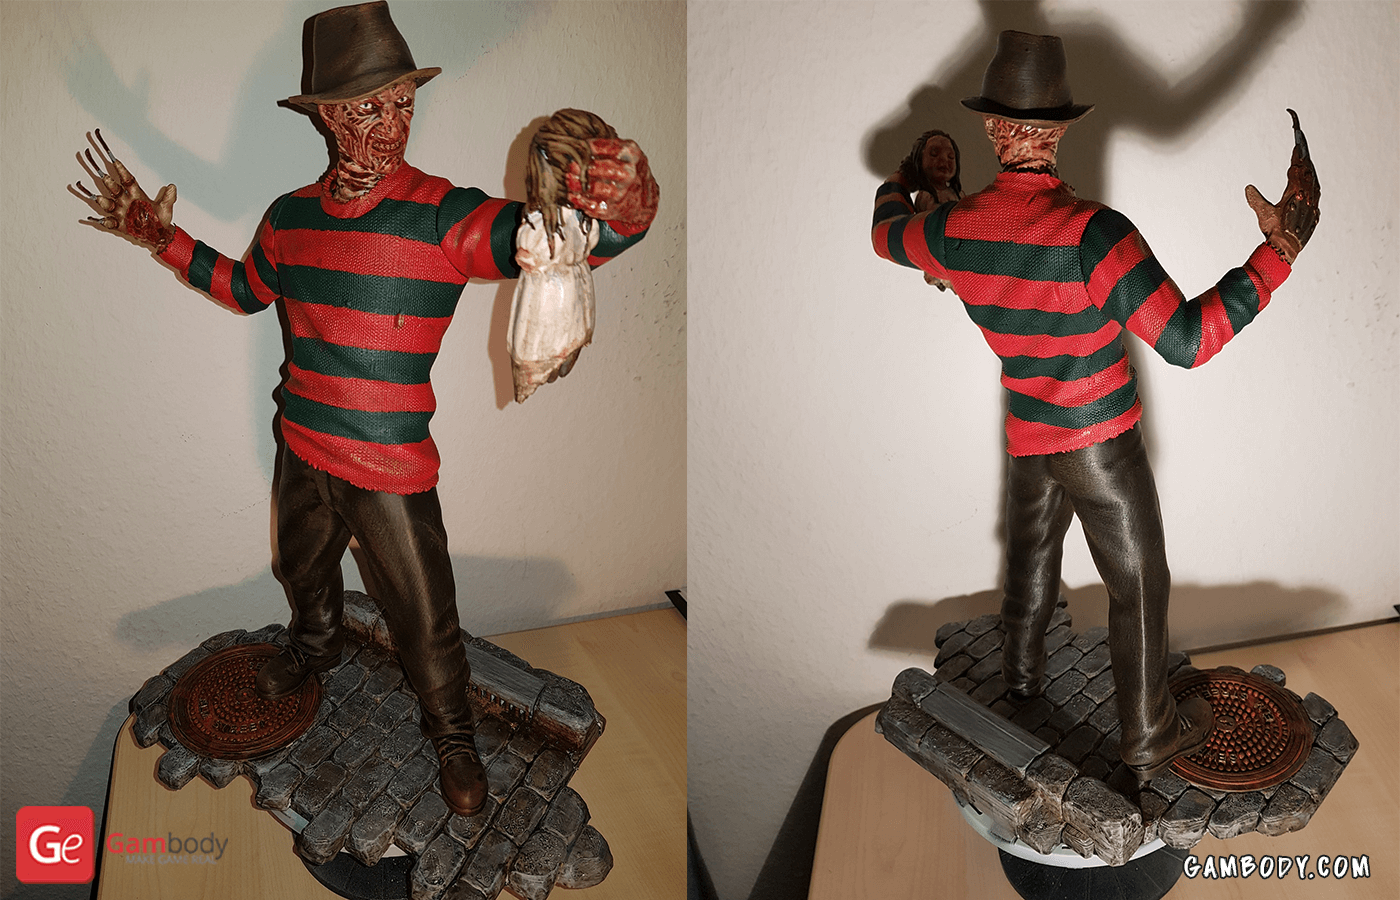 Freddy Krueger 3D Printing Figure Photo 2